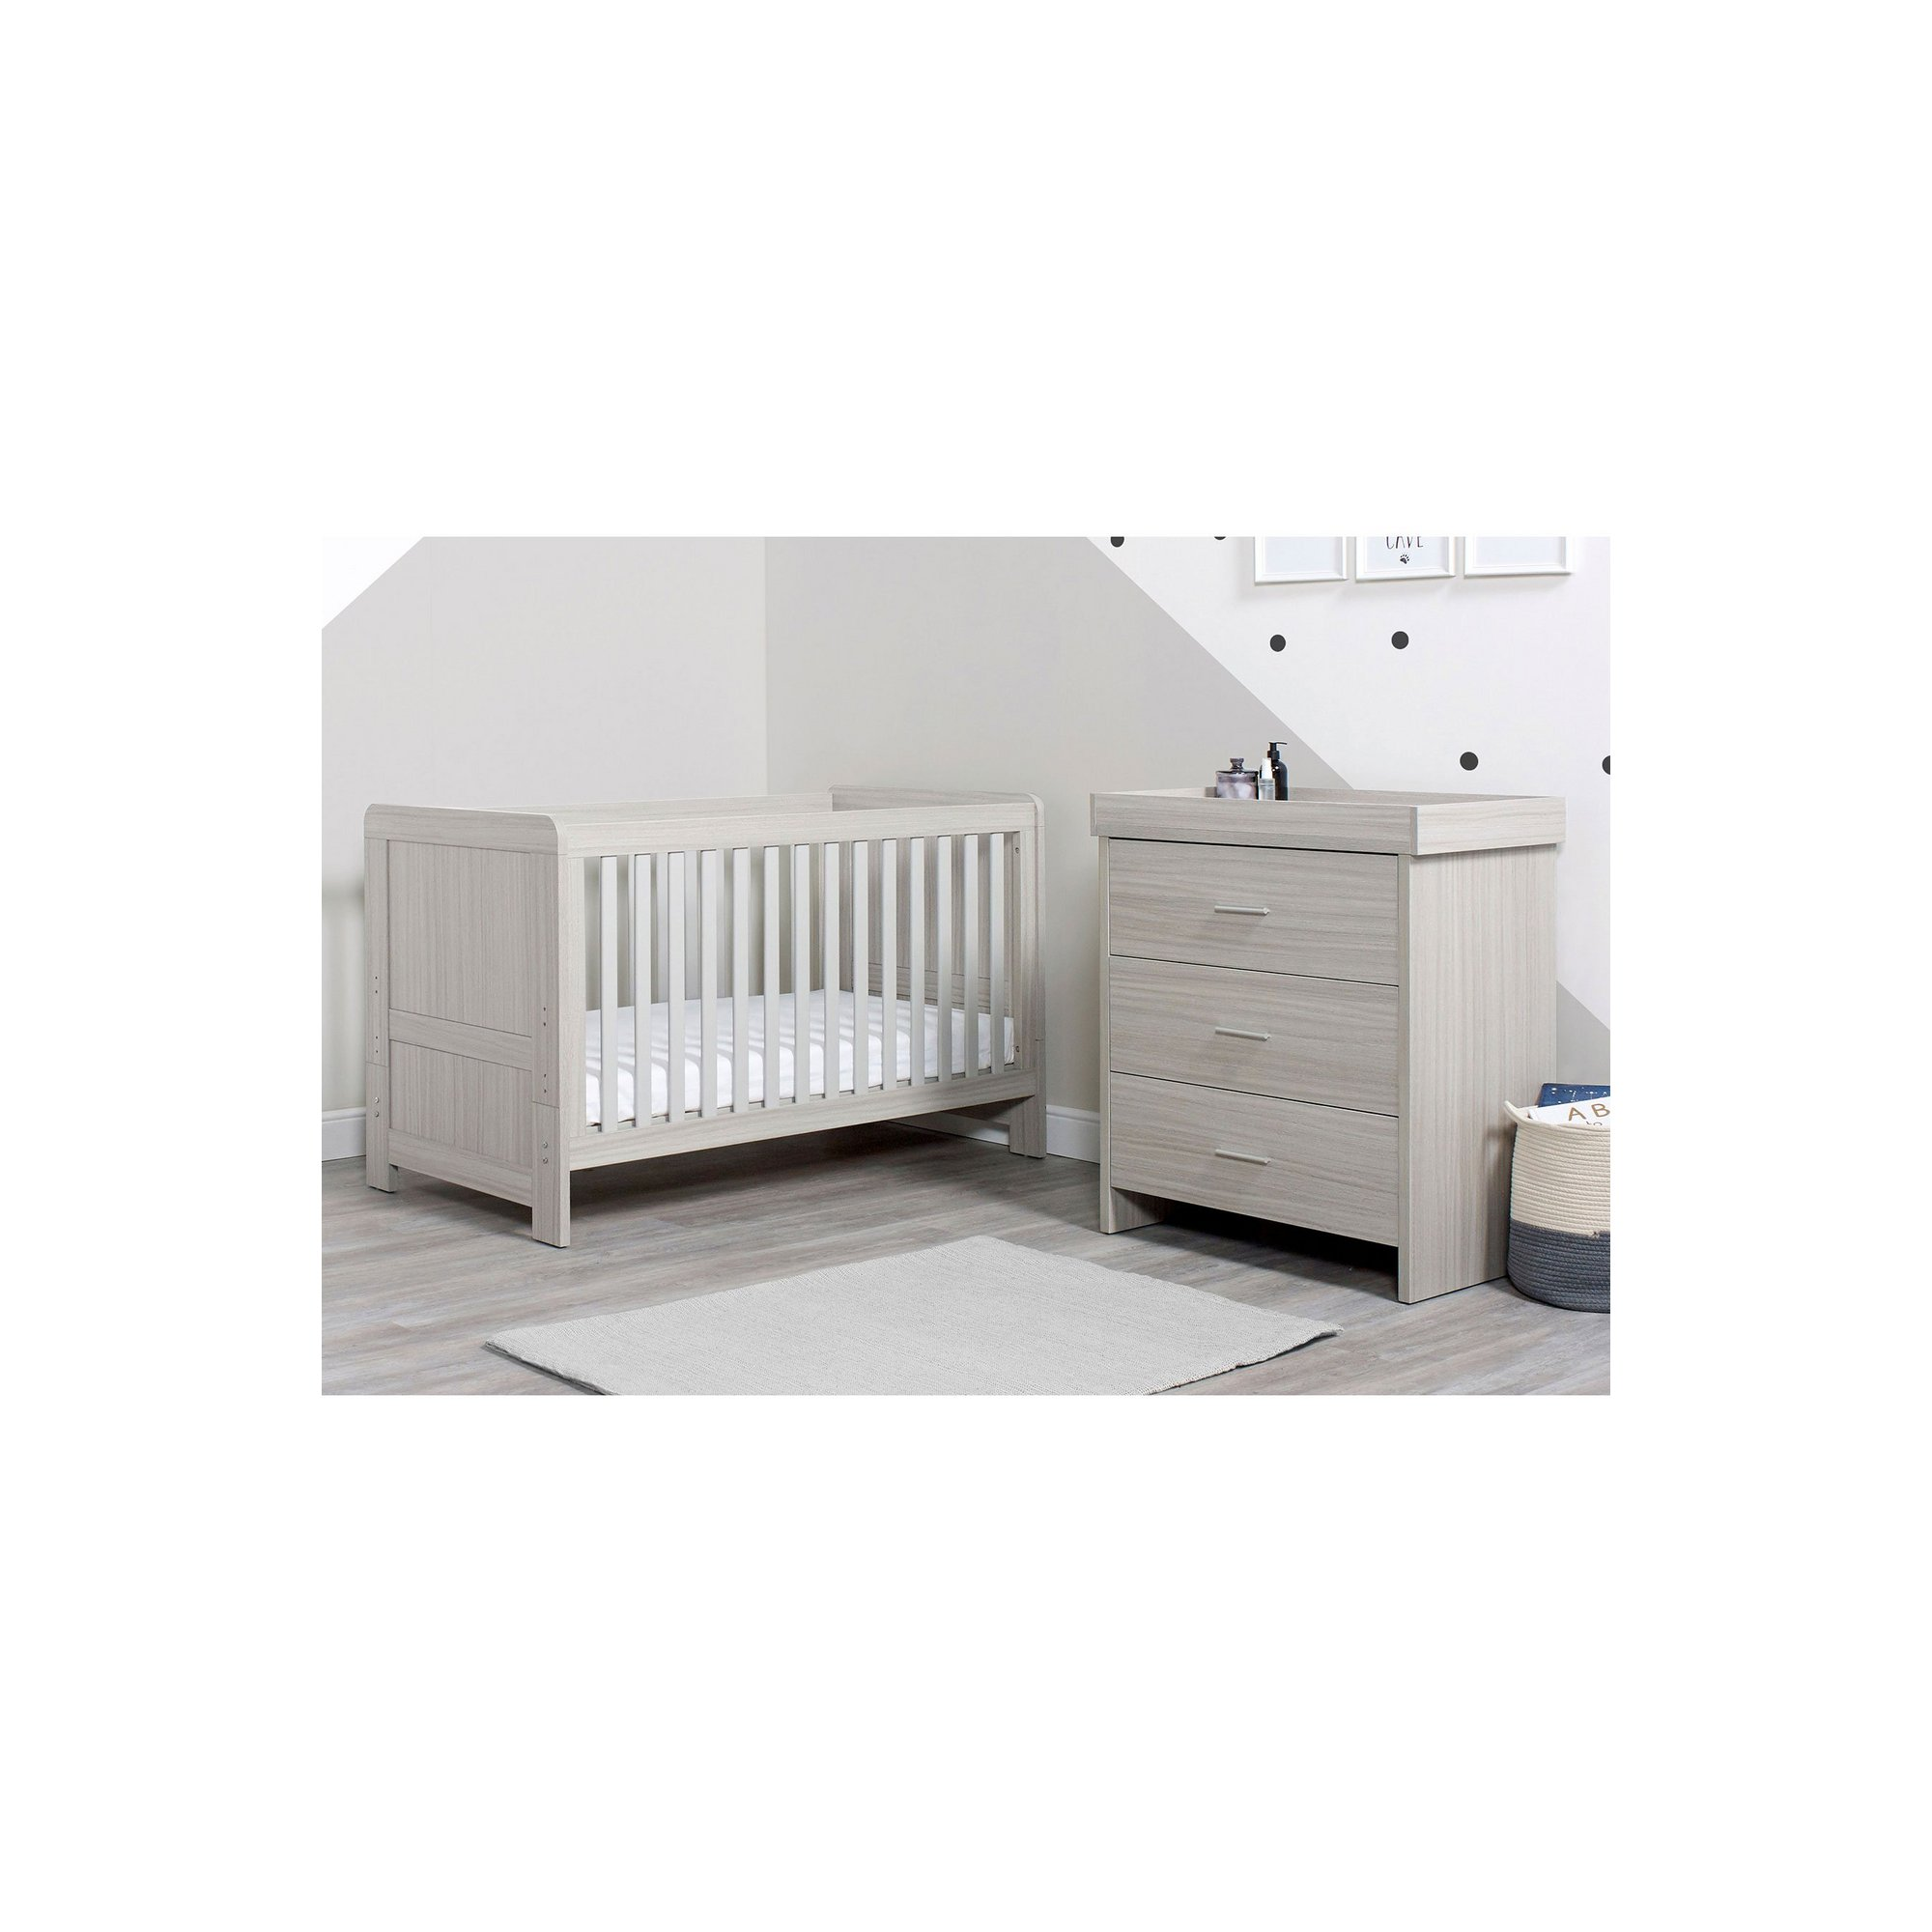 Image of Ickle Bubba Ash Grey Pembrey Cot Bed and Changing Unit